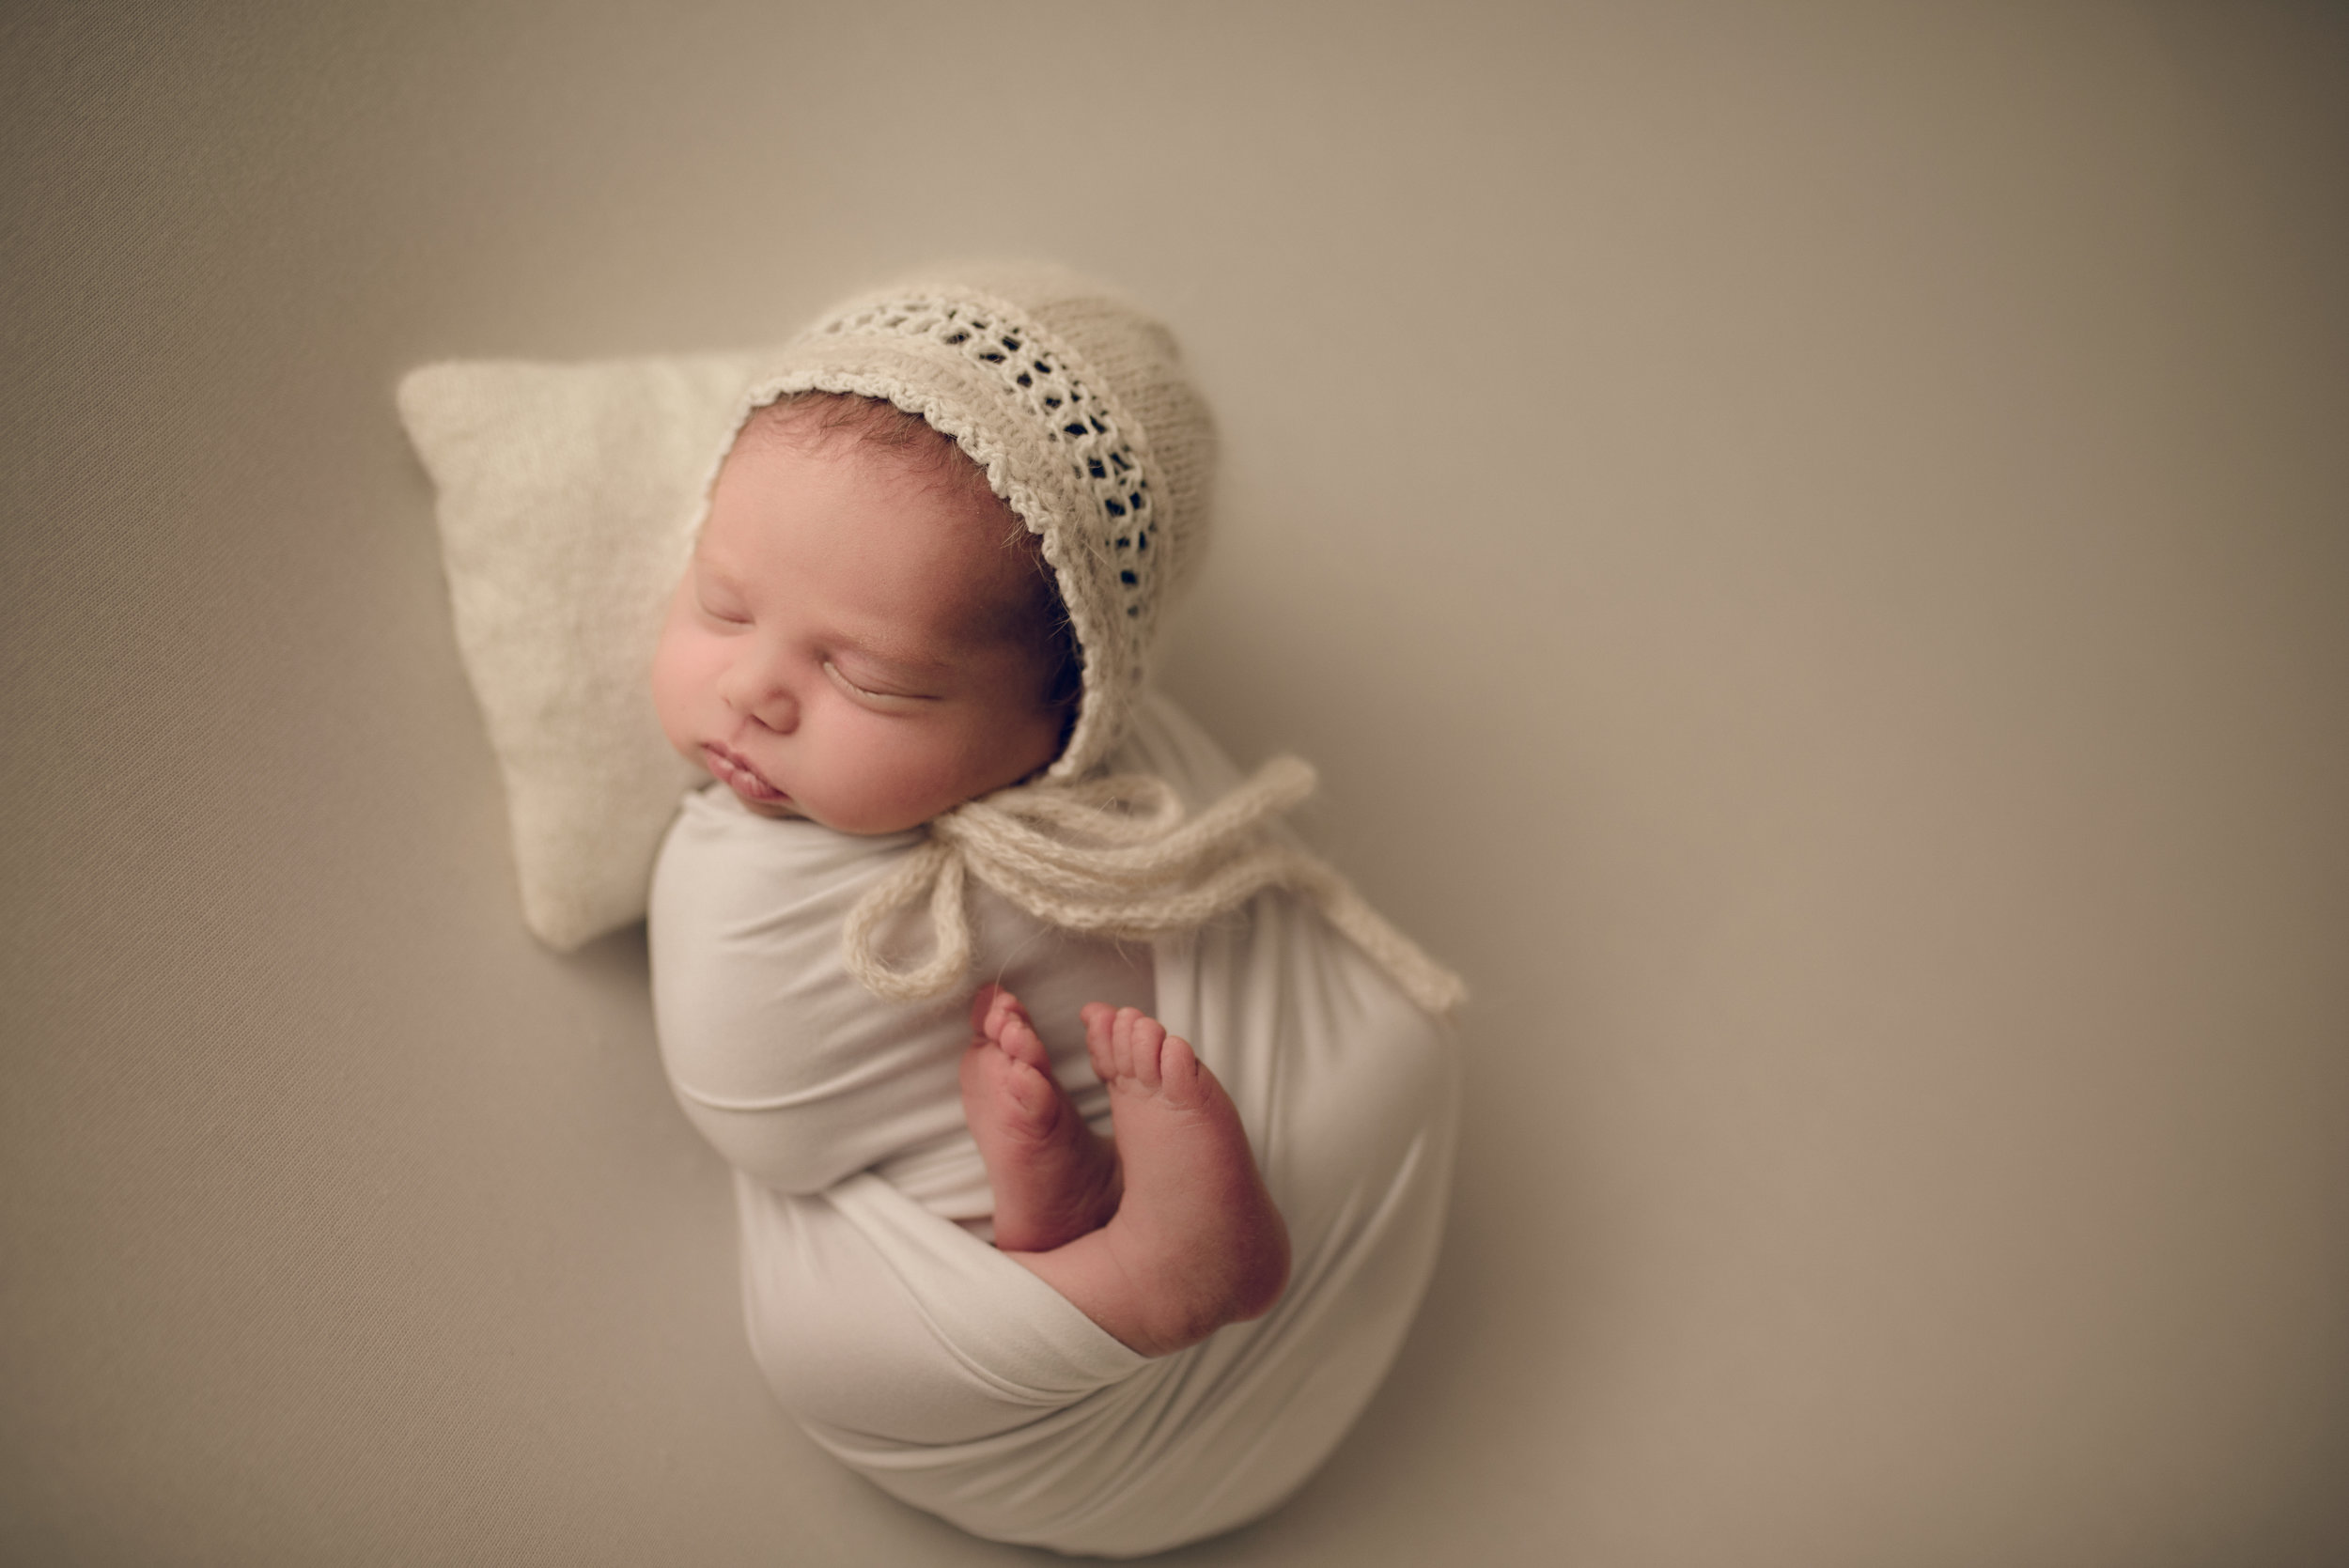 Newborn_Lana_9Days-7.jpg